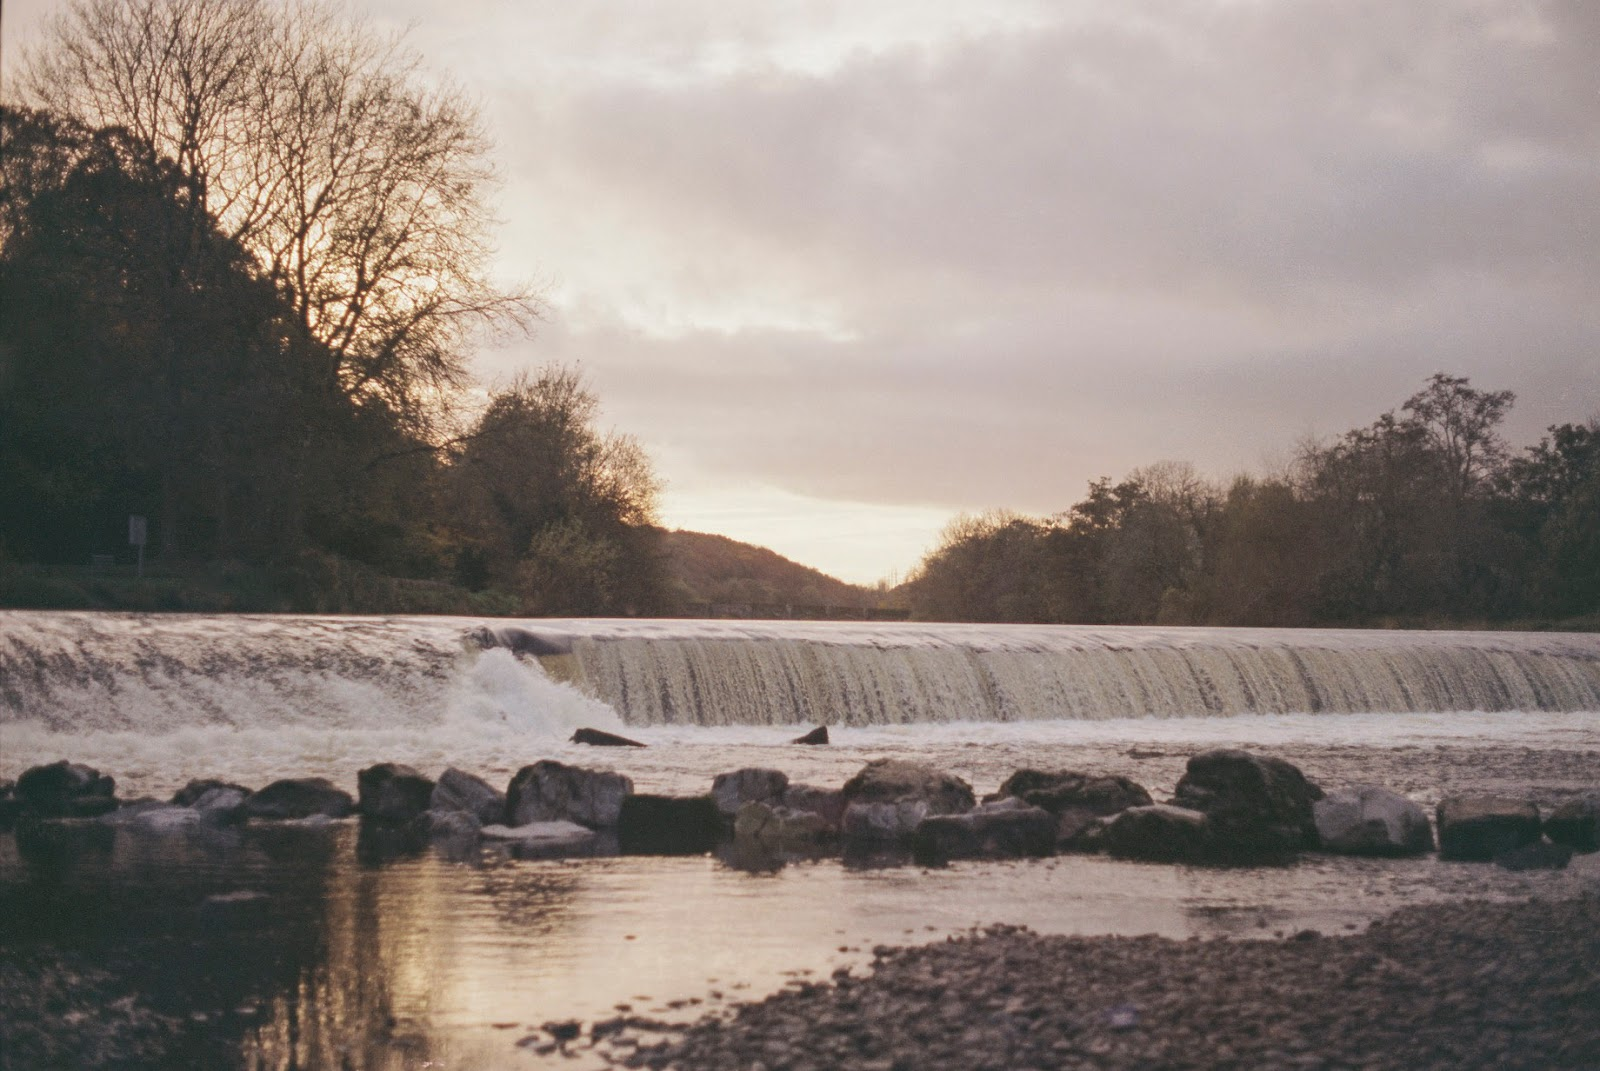 A weir on the river Lee captured in the Ballincollig Regional Park, County Cork.